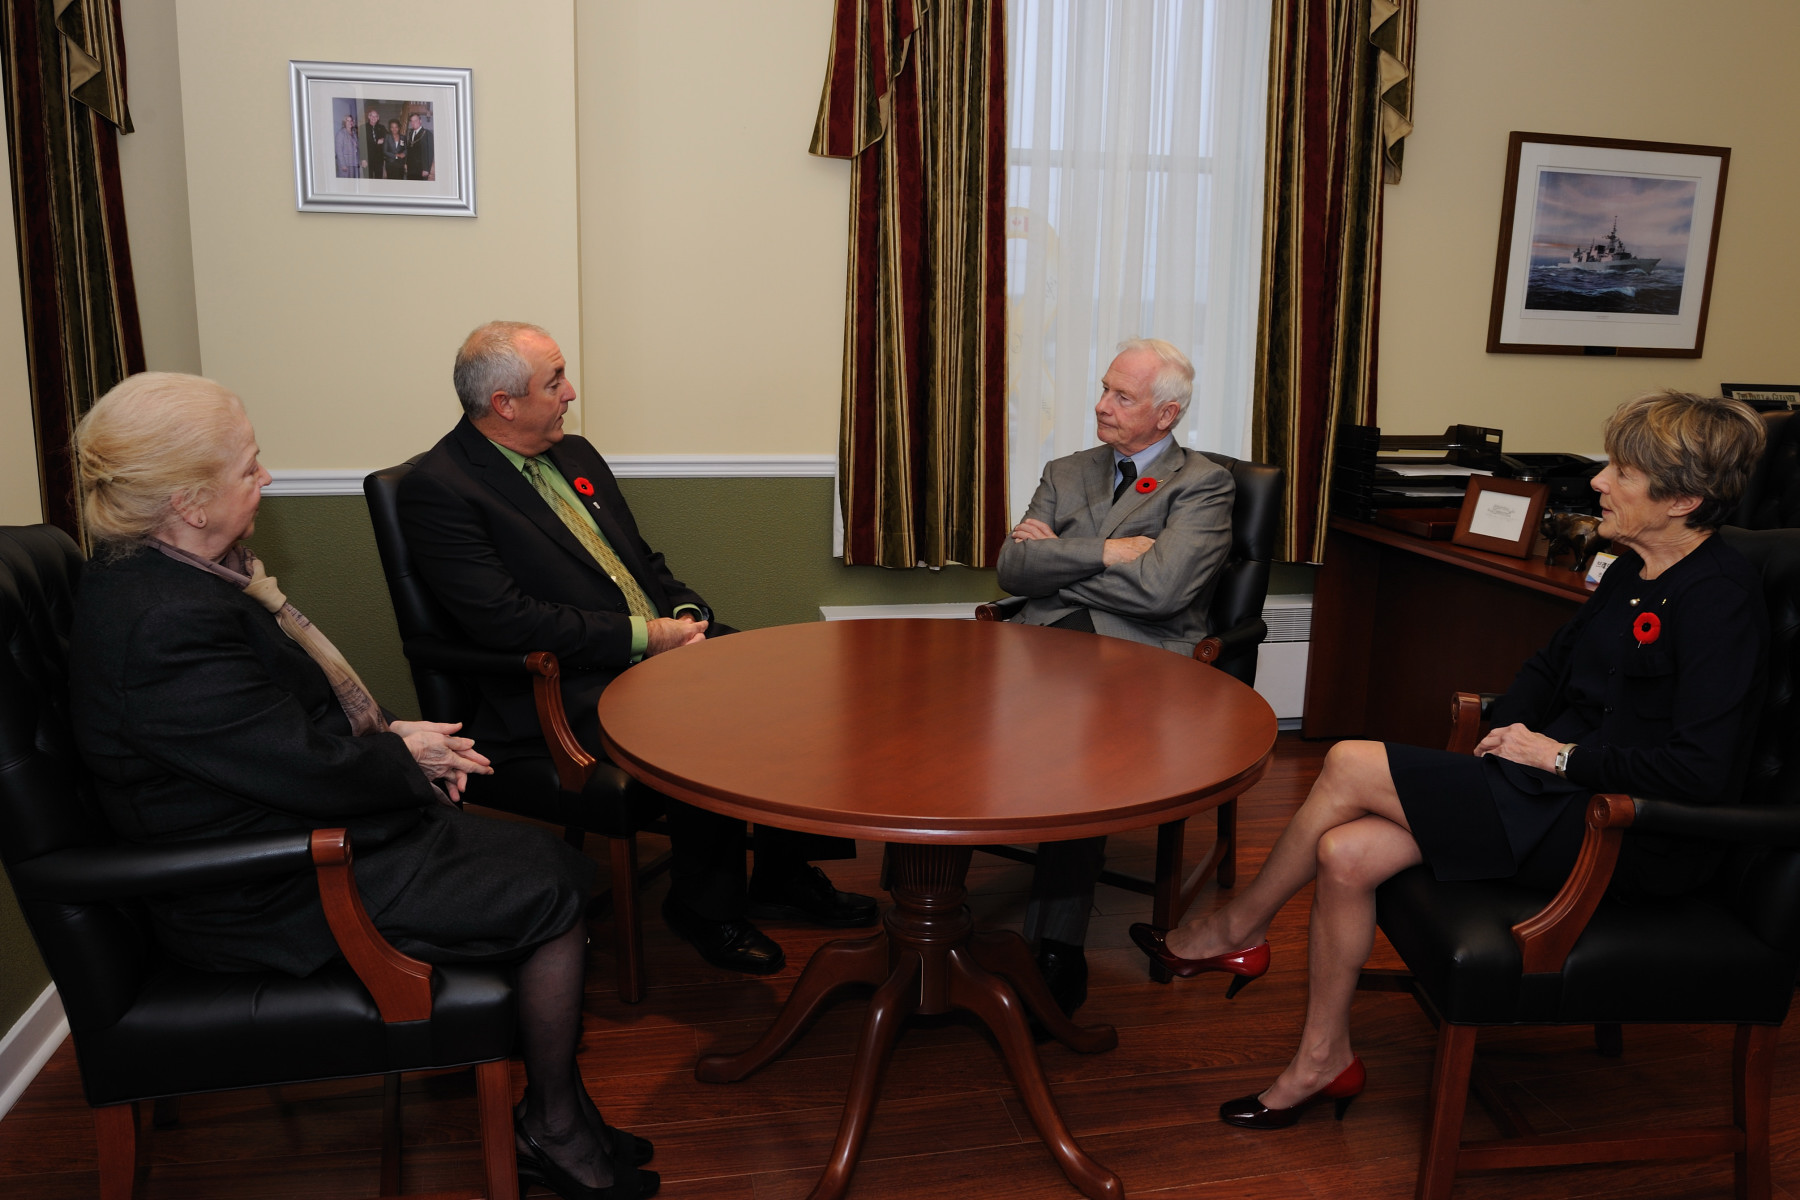 Their Excellencies along with the Secretary to the Governor General Ms. Sheila-Marie Cook (left) had a meeting with Deputy Mayor of Fredericton Mr. Dan R. Keenan inside City Hall.